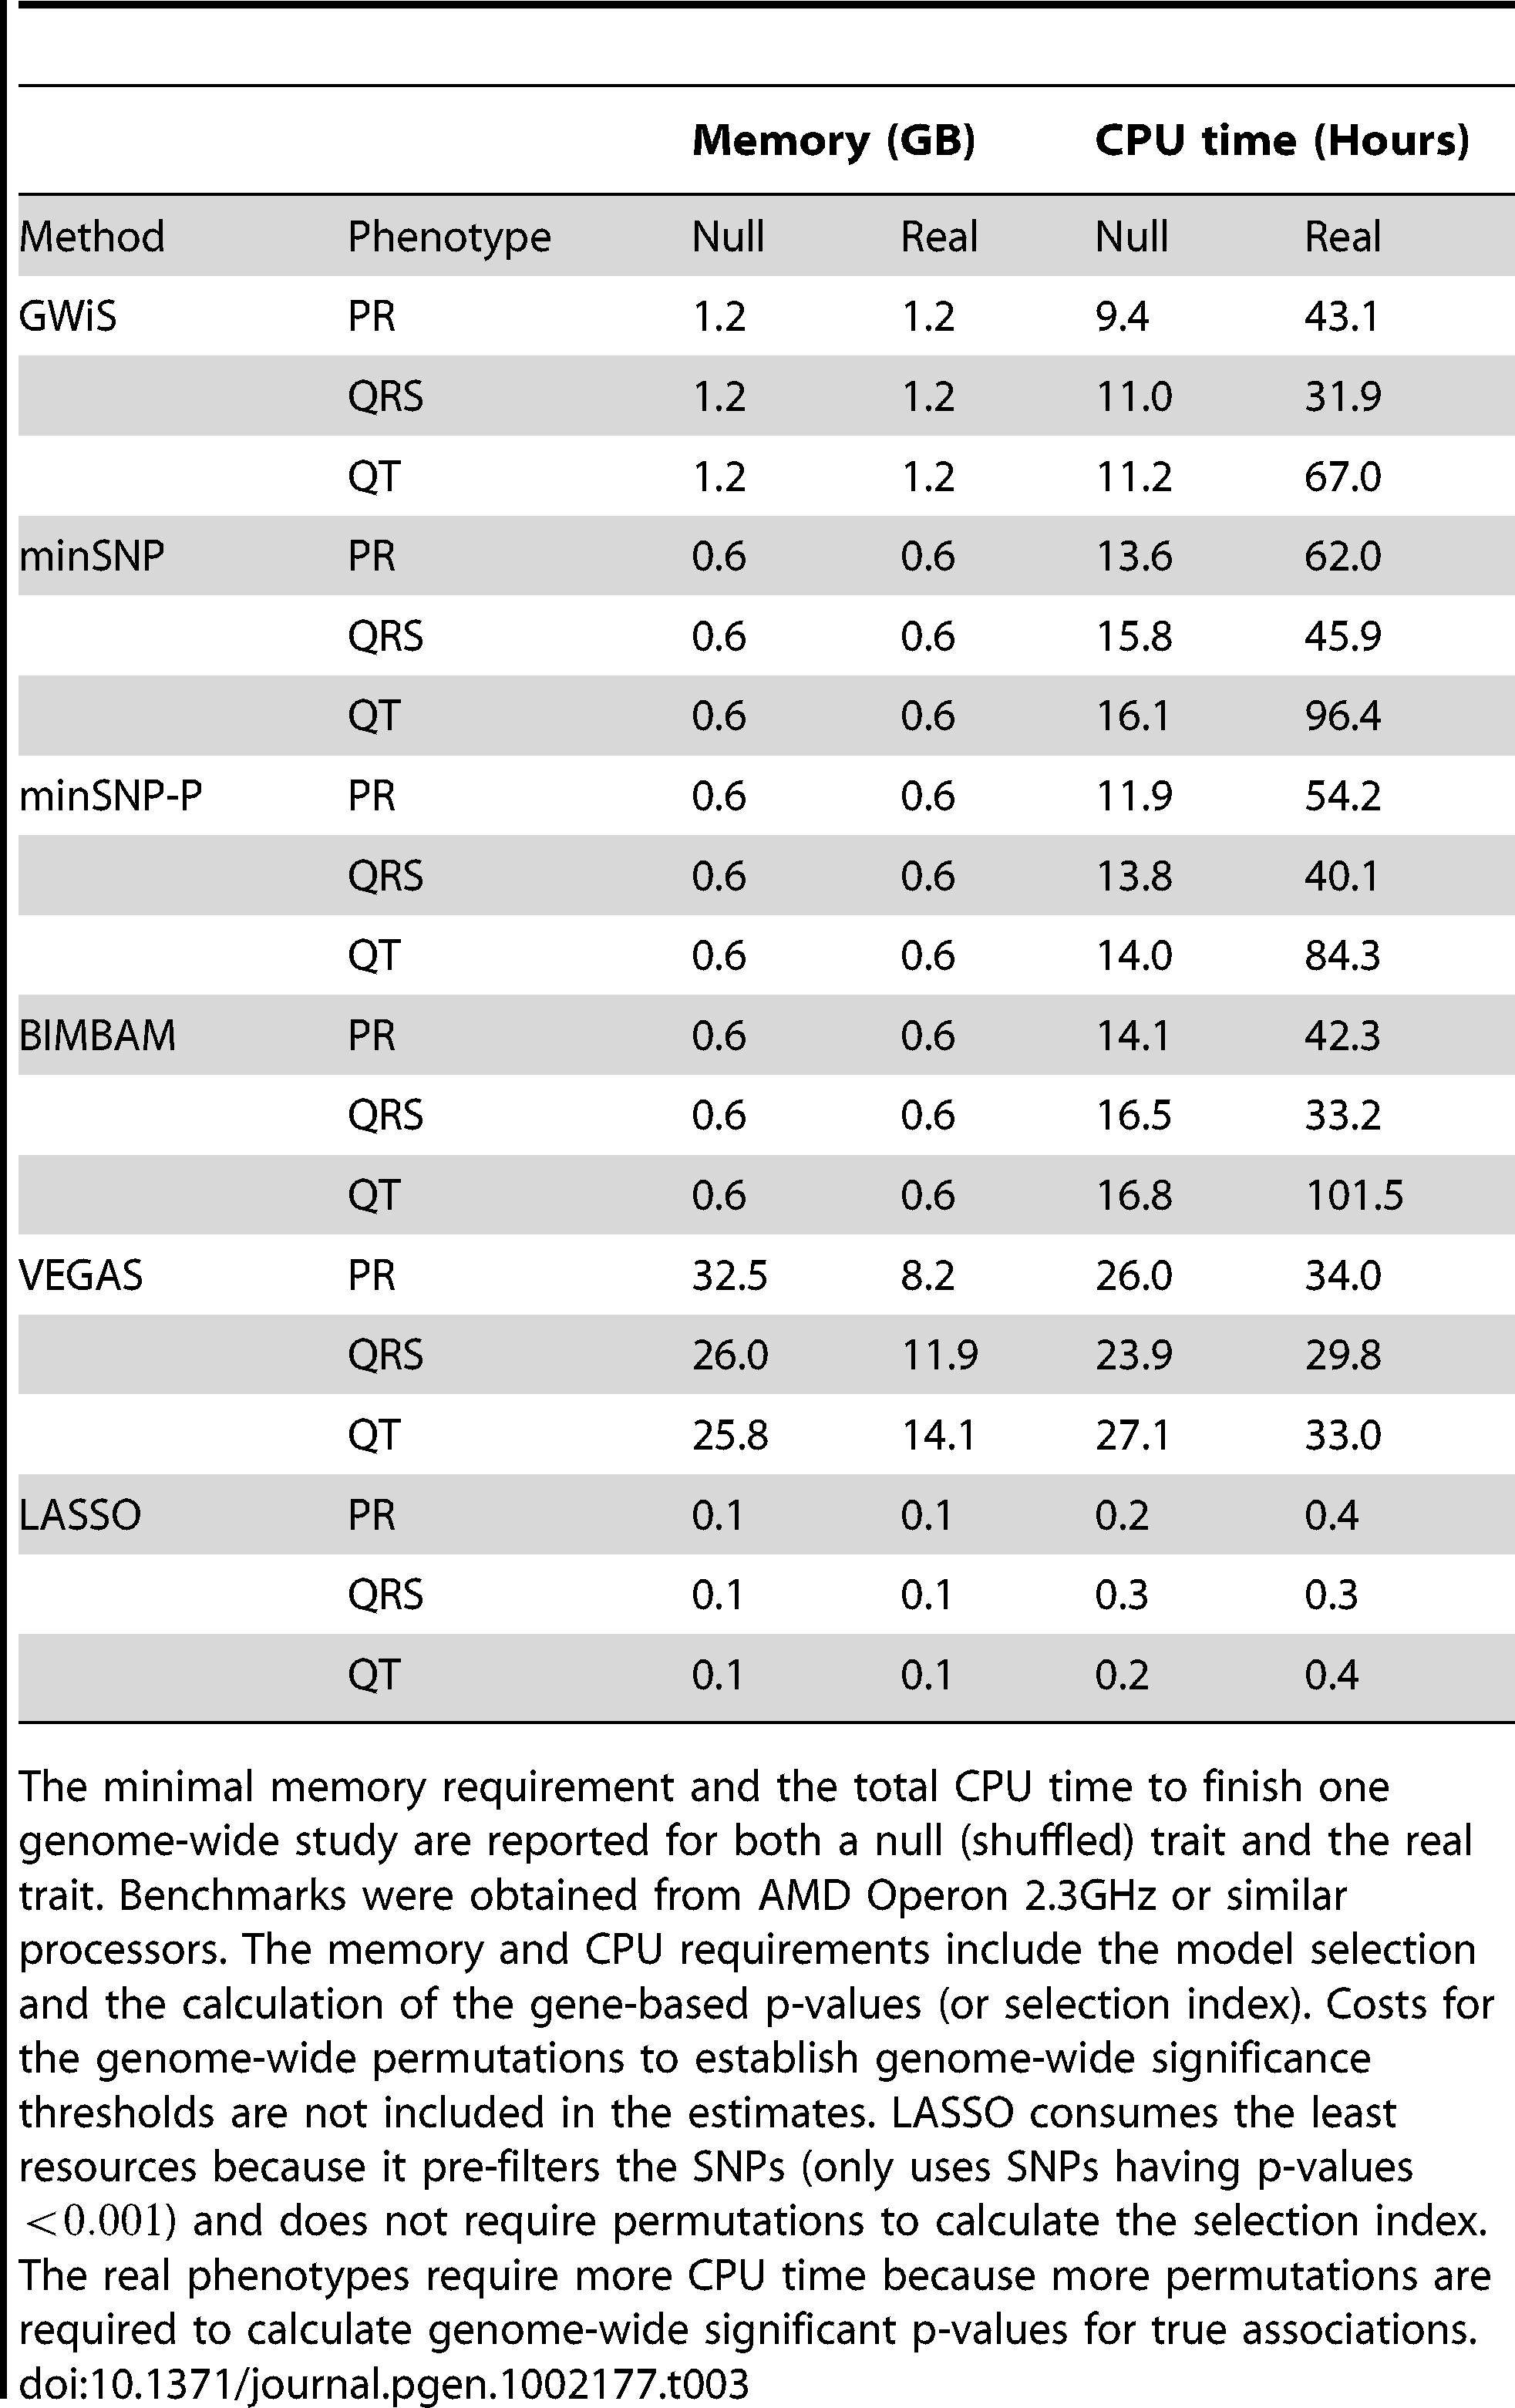 Memory and CPU requirements.